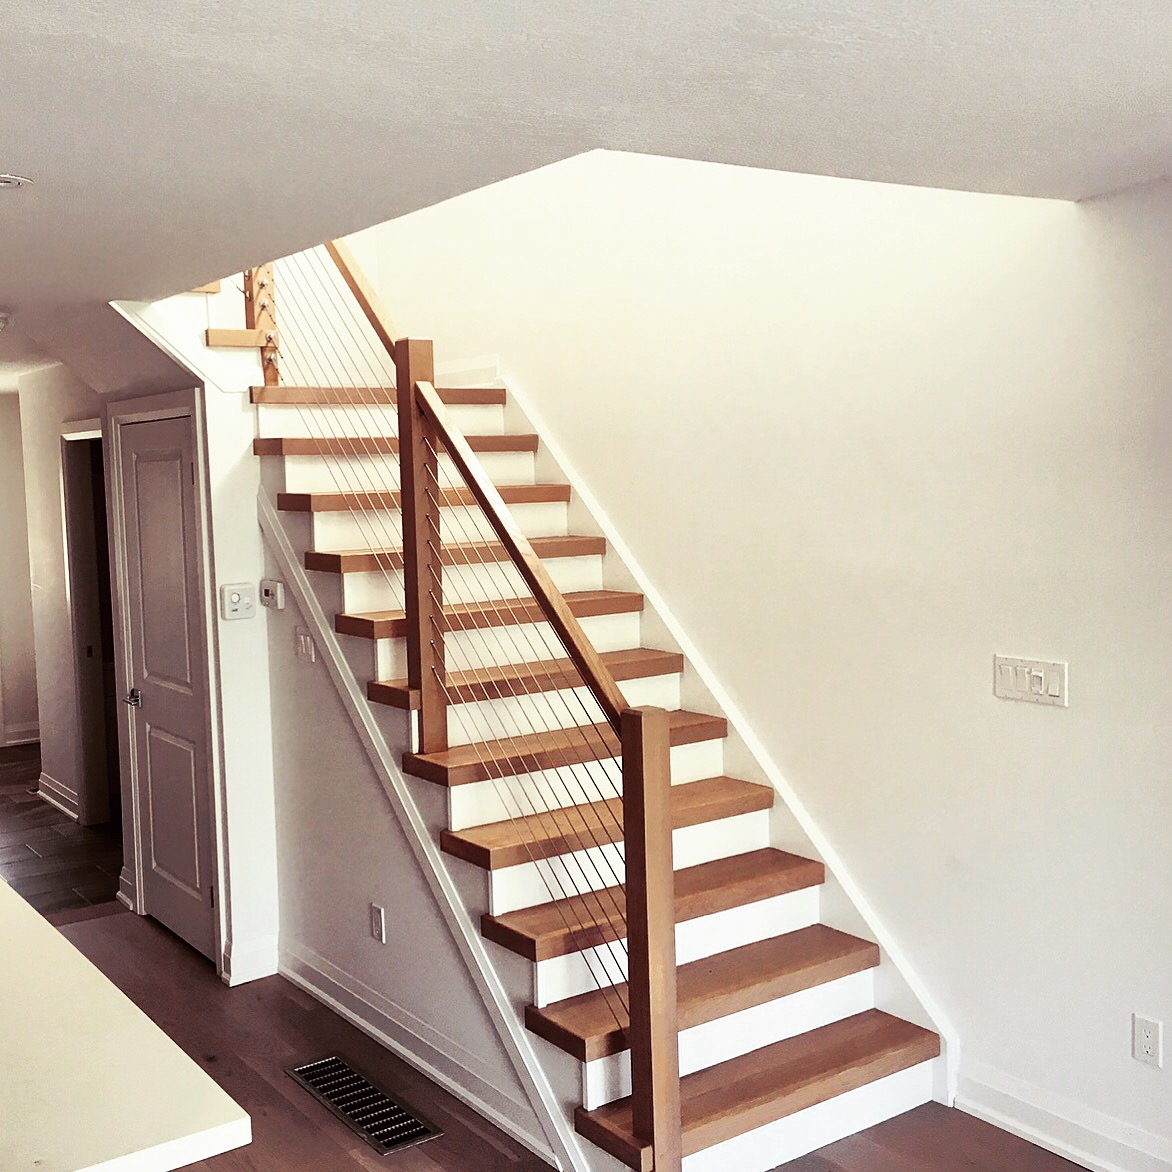 3-1/2 contemporary posts with flat railing, stainless steel cable railing system.  Job location: Collingwood, ON